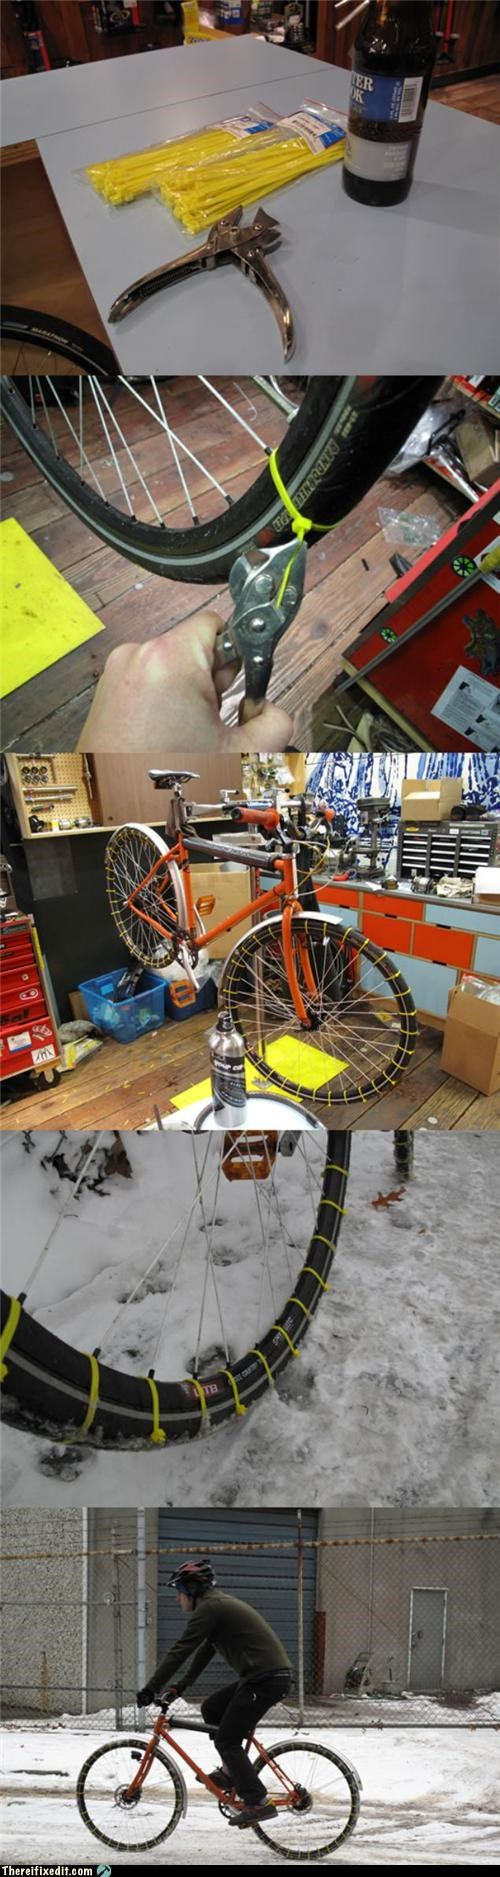 beer bicycles Follow Up snow tire winter zip tie